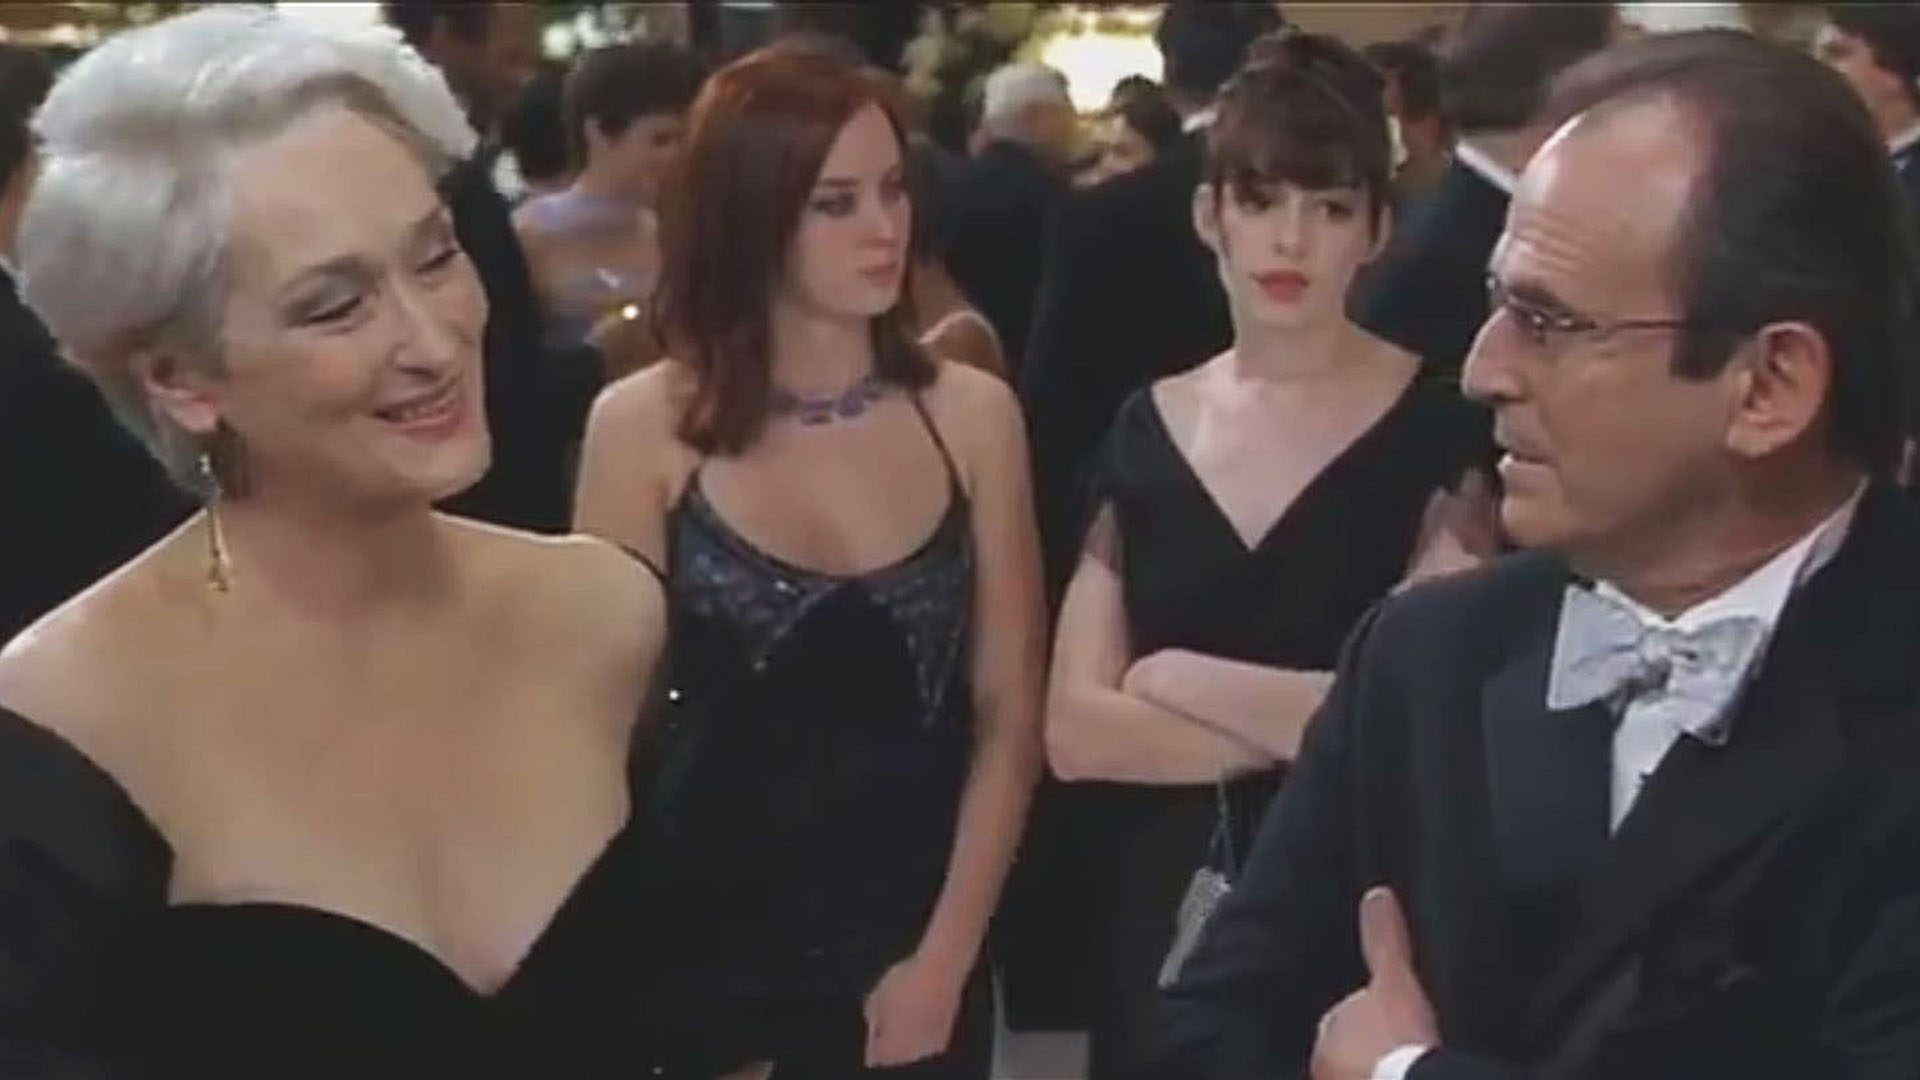 Devil Wears Prada Deleted Scene Causes Outrage Years Later